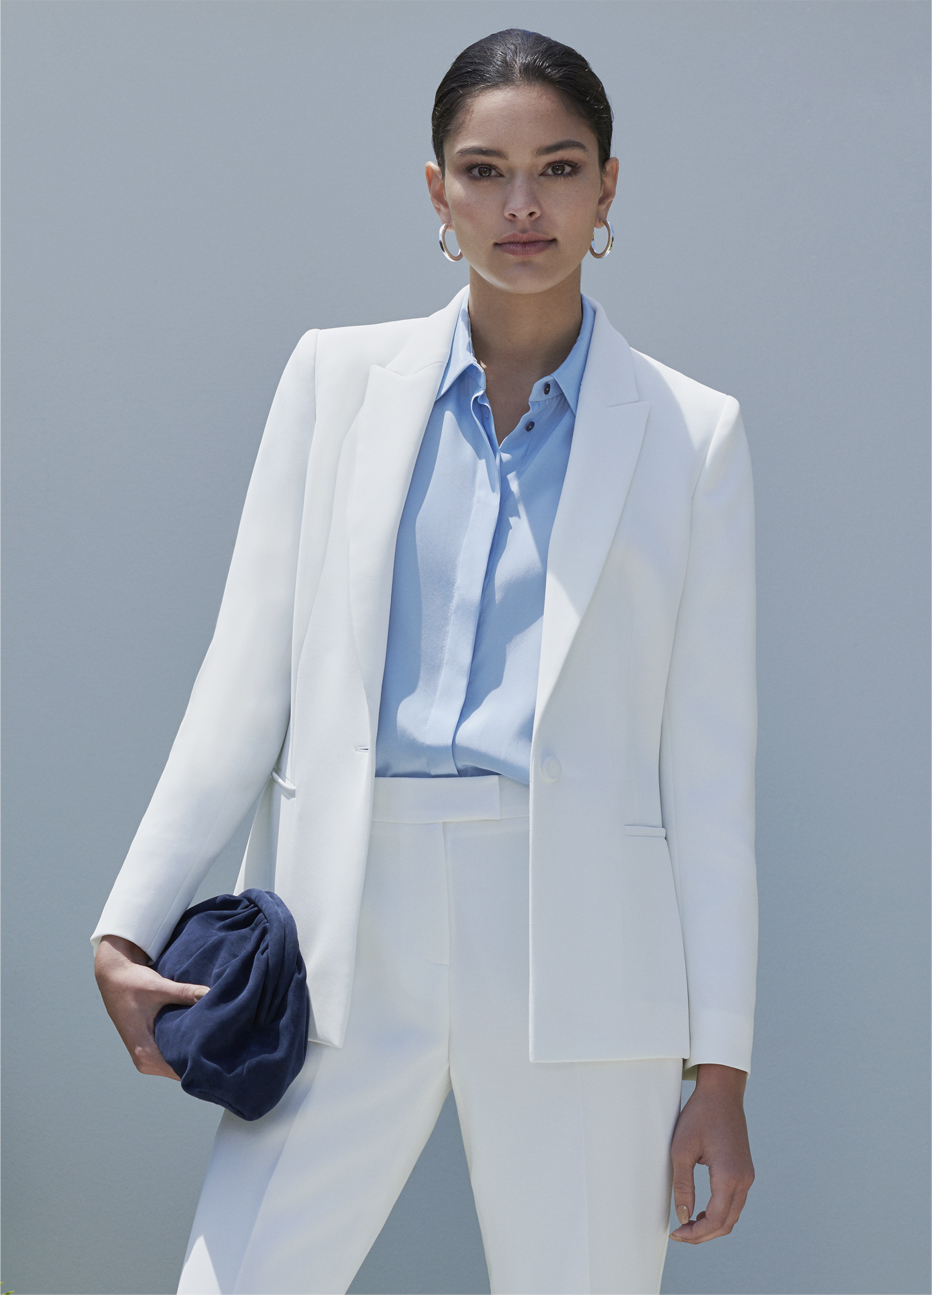 Women's trouser suit in white worn with a pale blue collared shirt and a navy blue suede clutch by Hobbs.